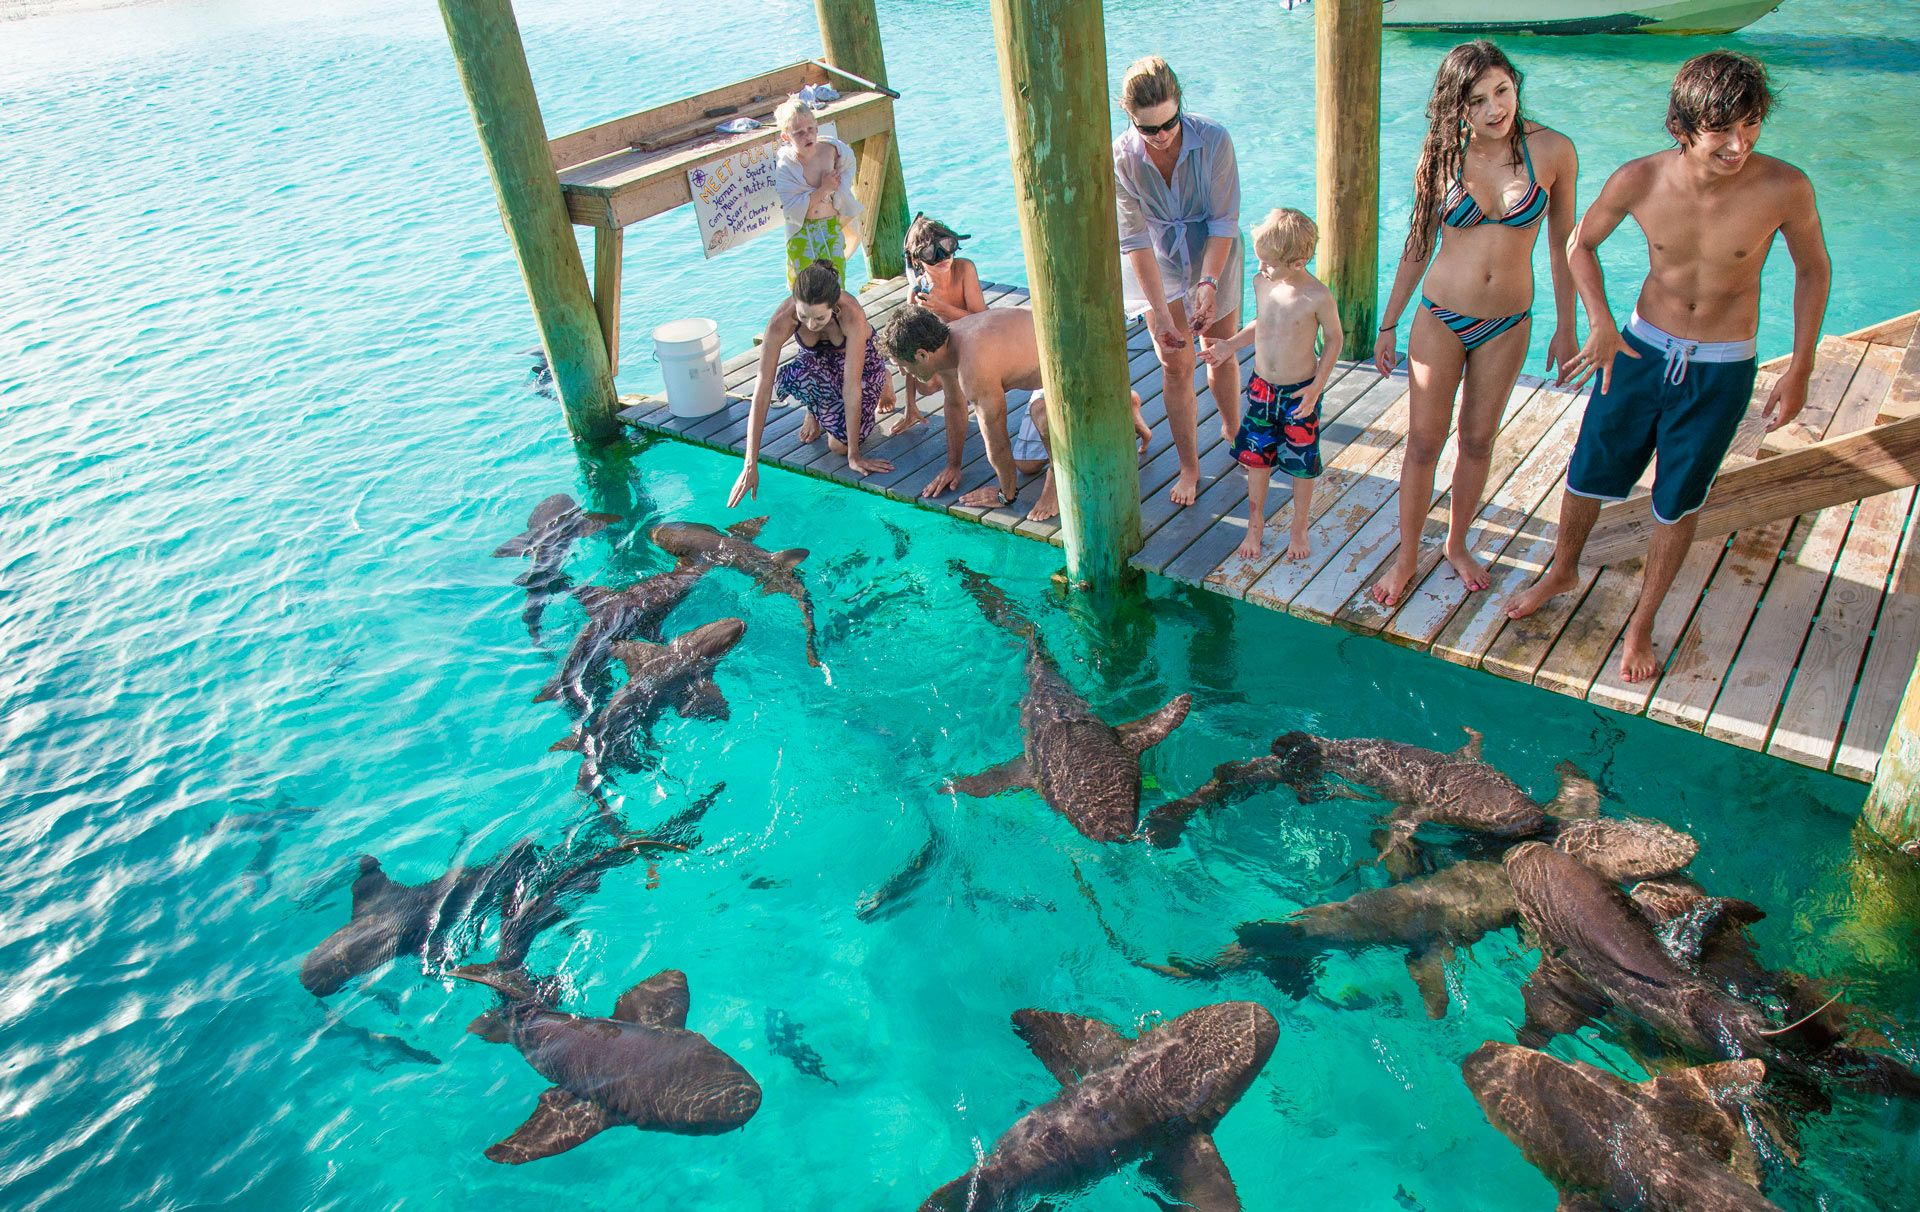 Feeding nurse sharks in Exuma